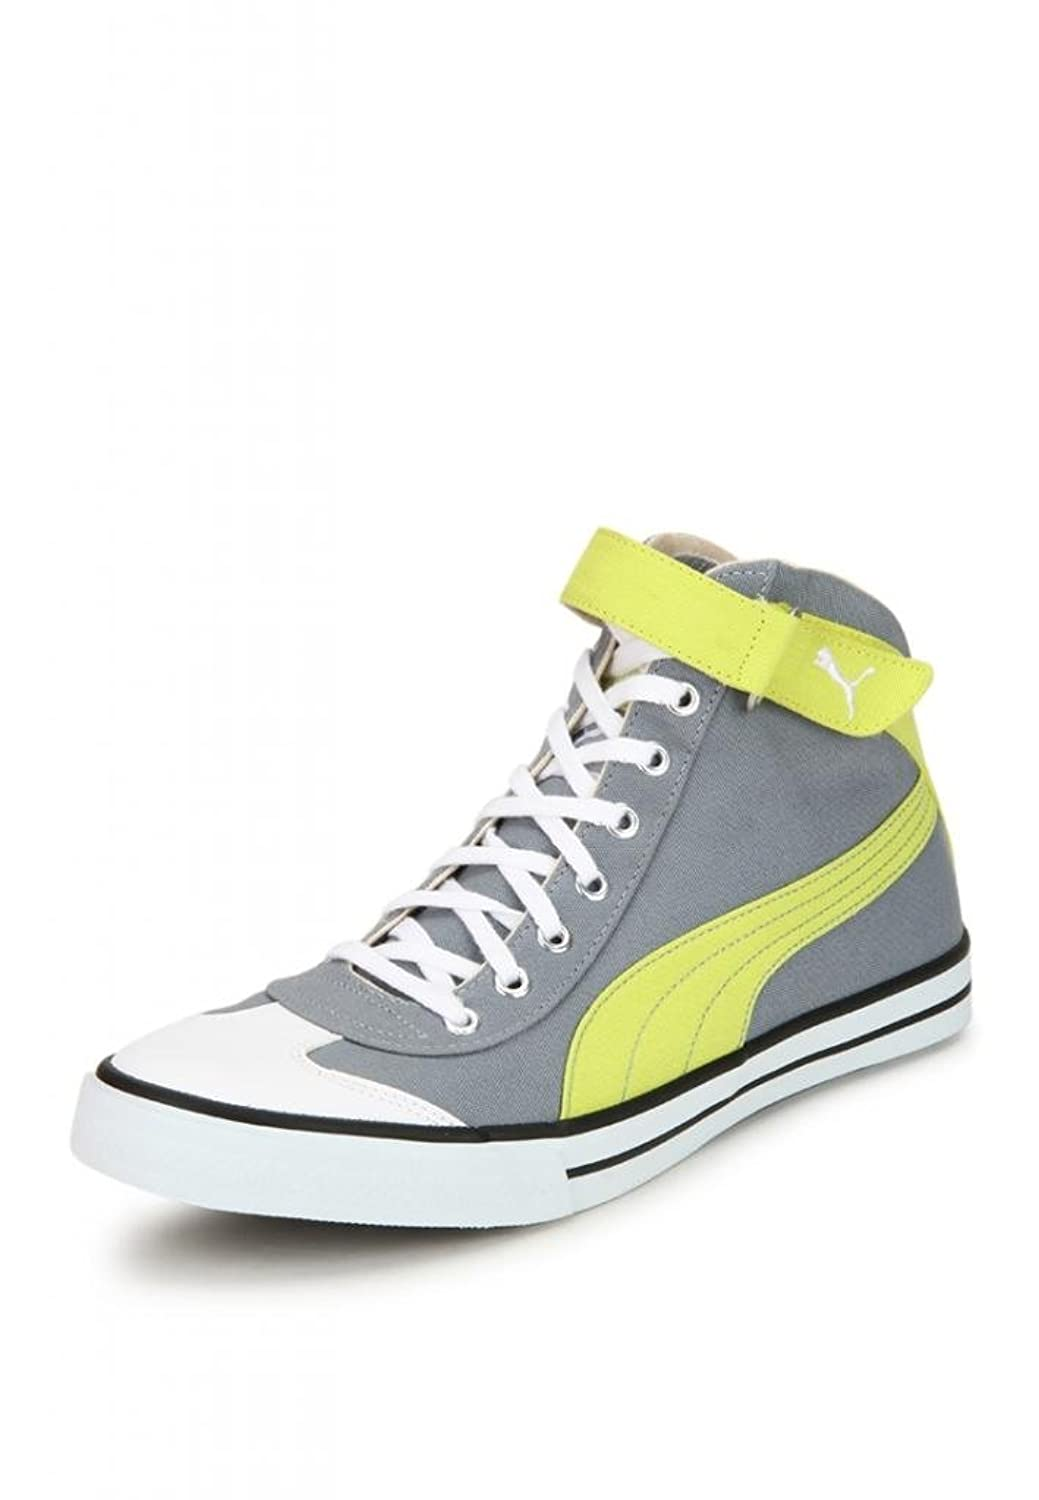 puma sneakers 917 at lowest price